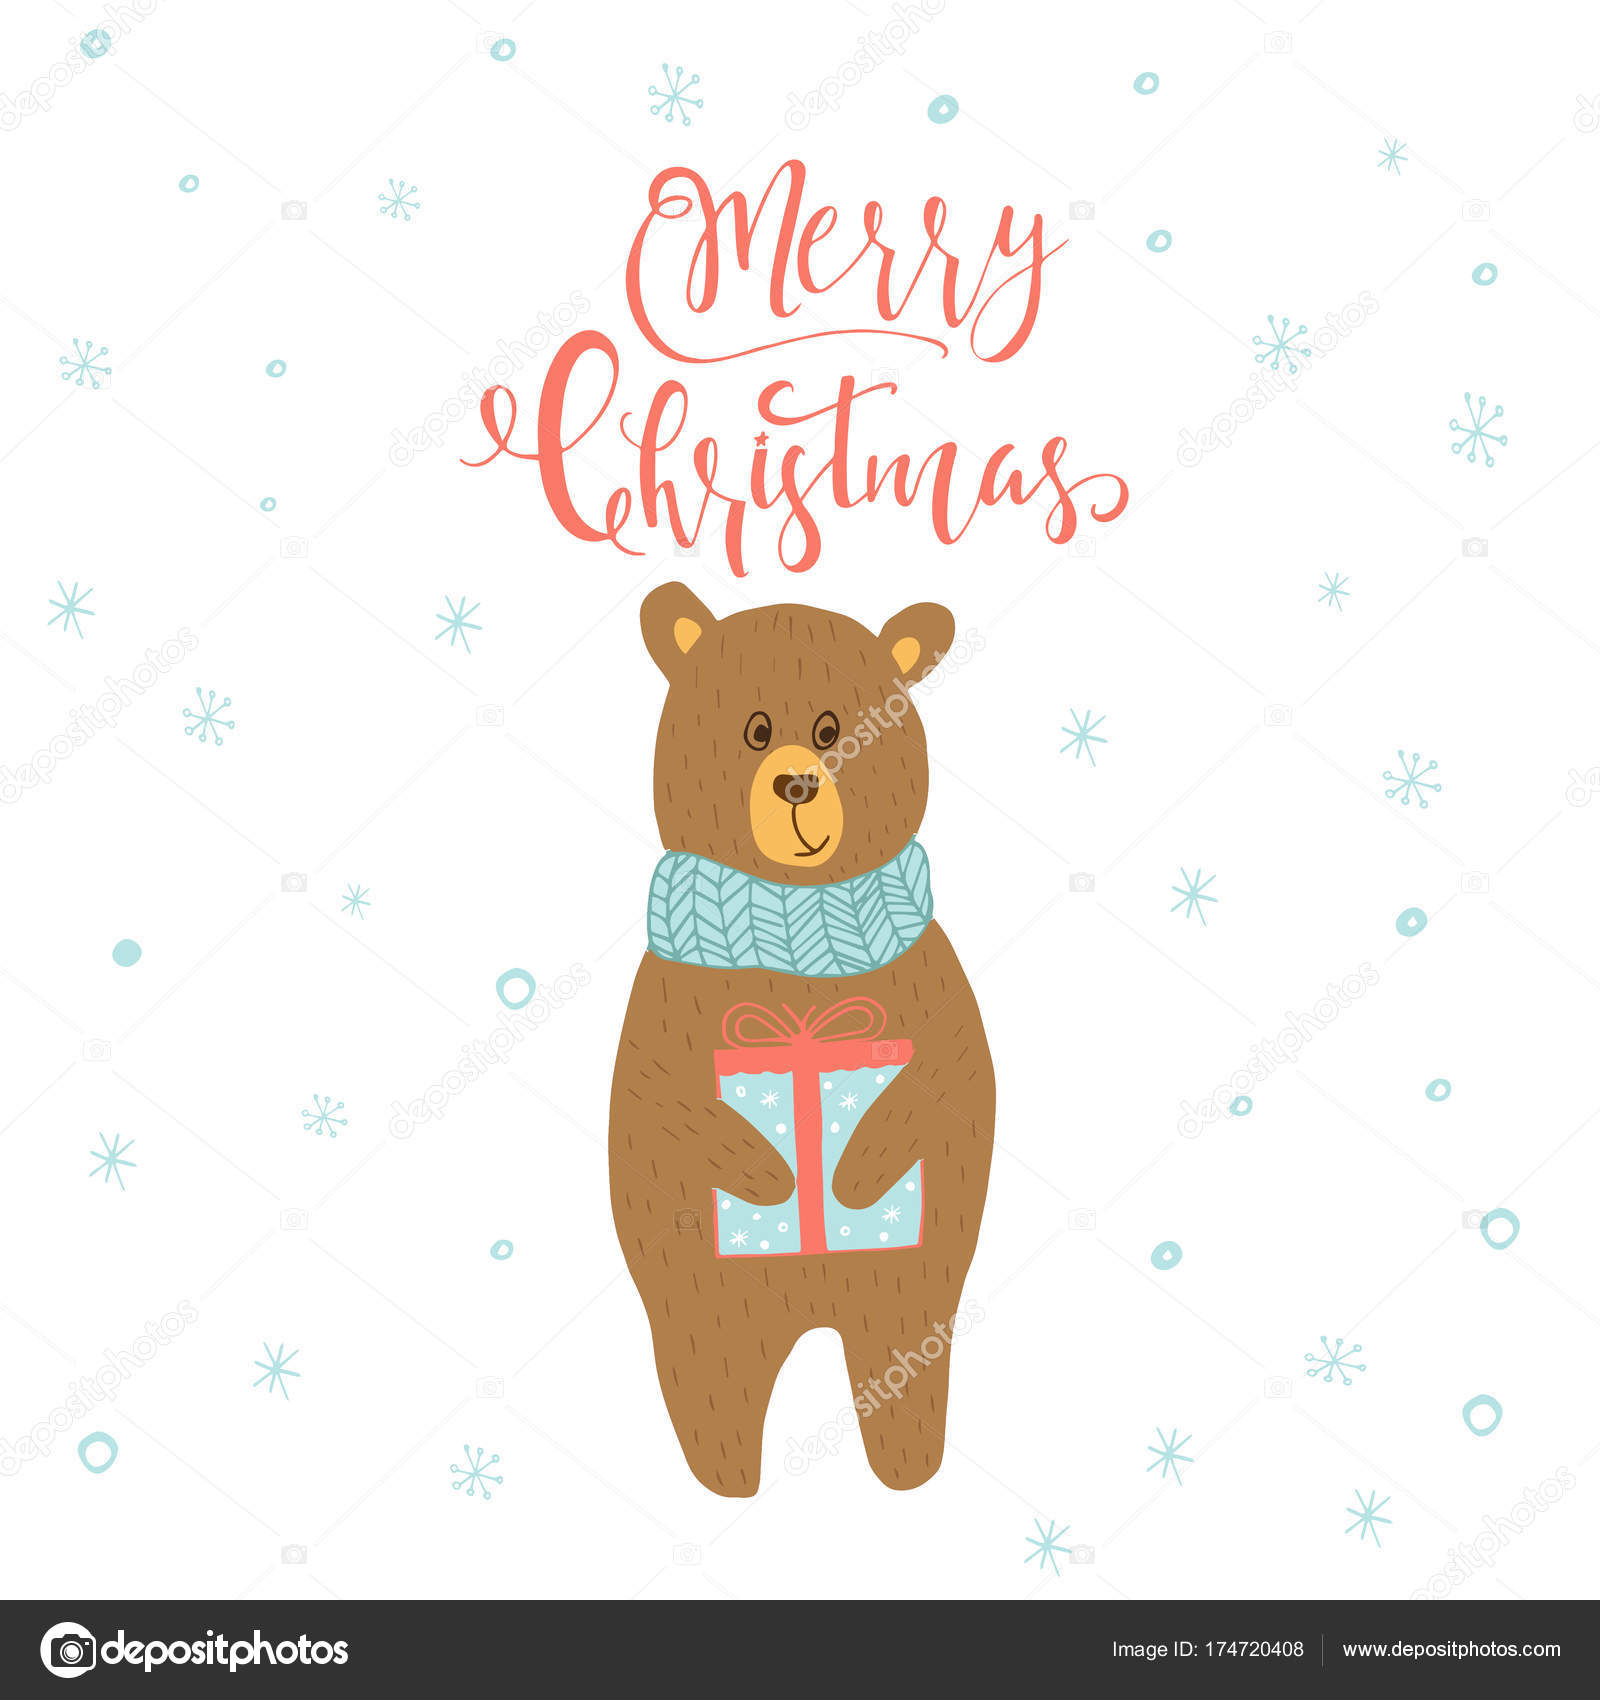 Merry Christmas Cute Greeting Card Bear Gift Presents Hand Drawn